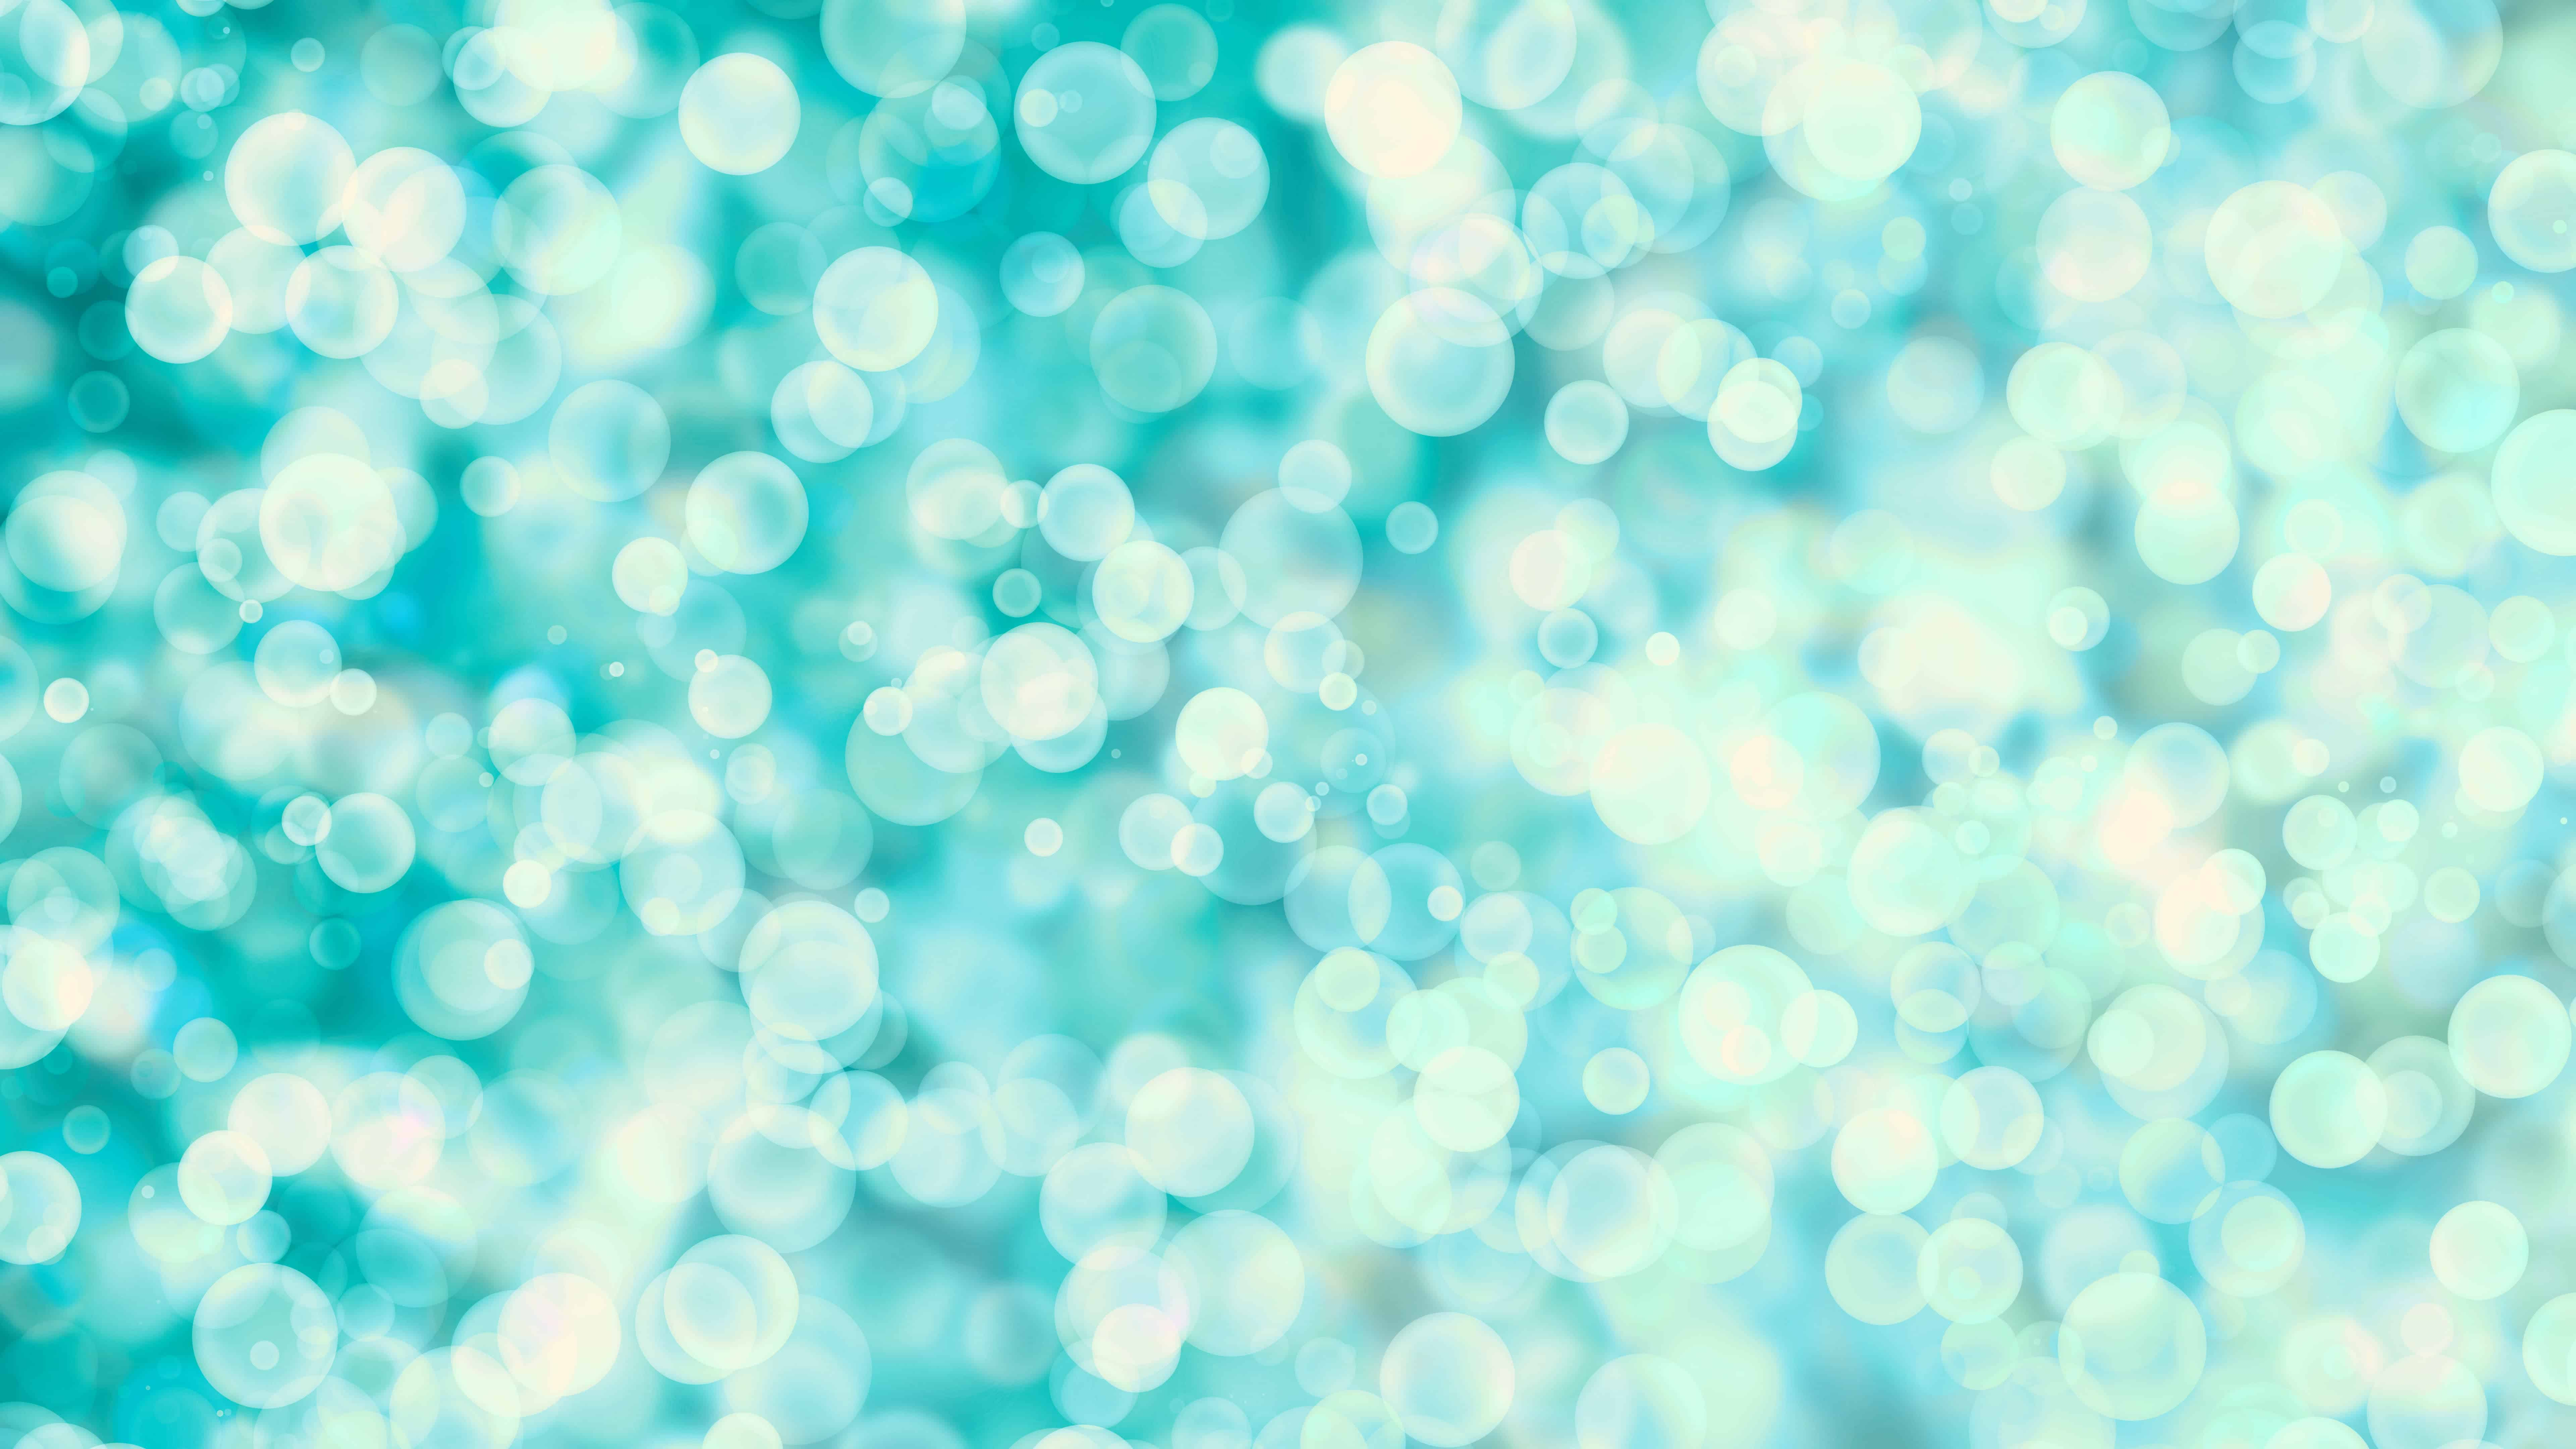 blue and green and white bubbles uhd 8k wallpaper